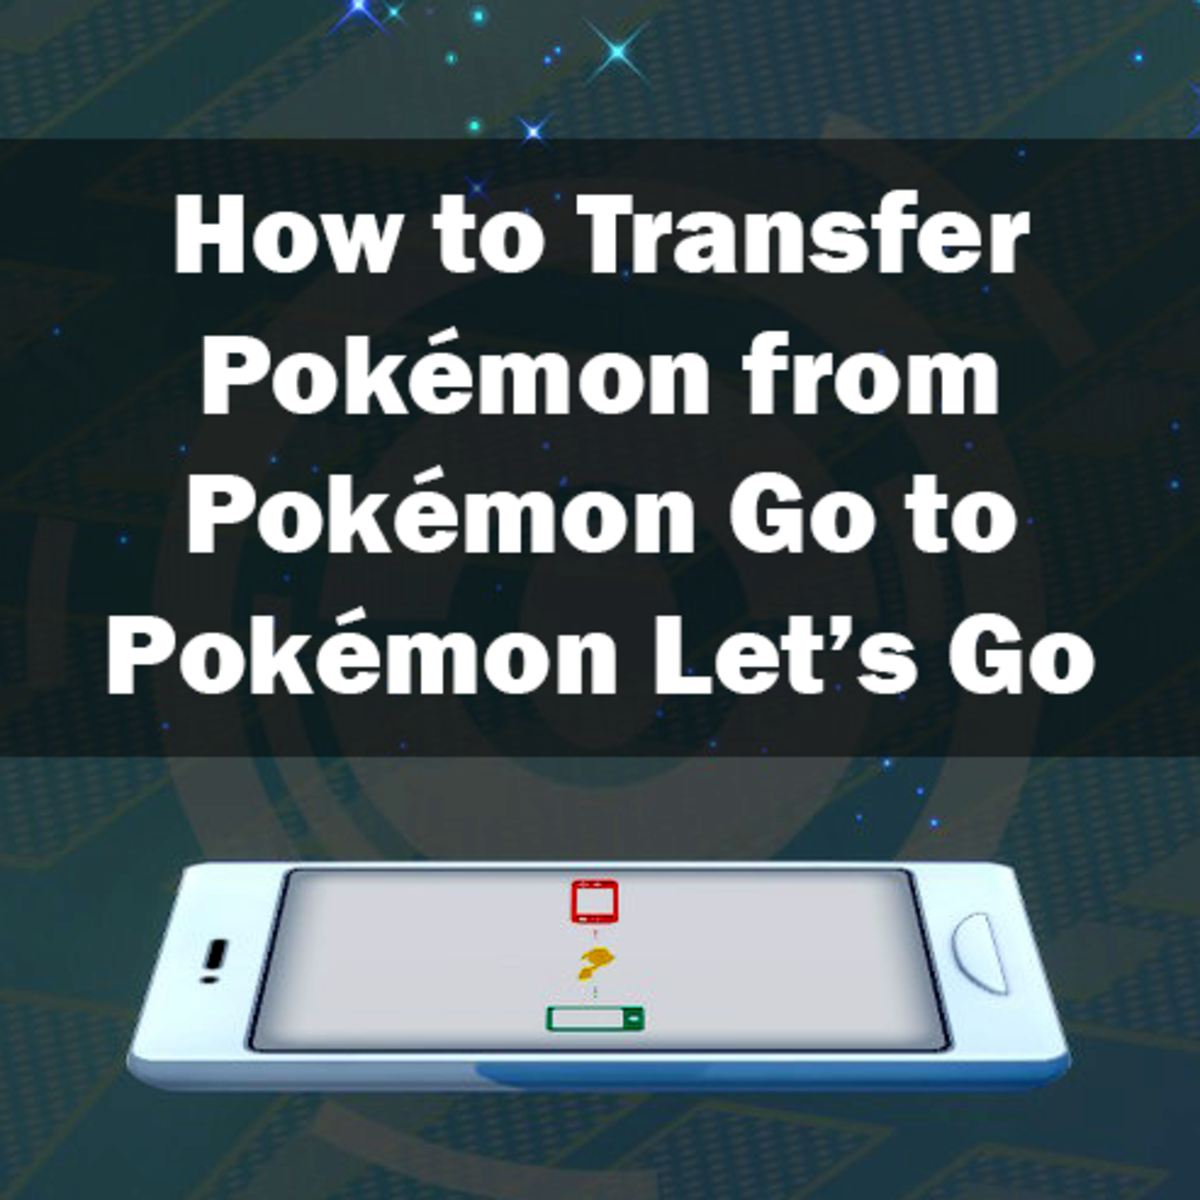 How to Transfer Pokémon From